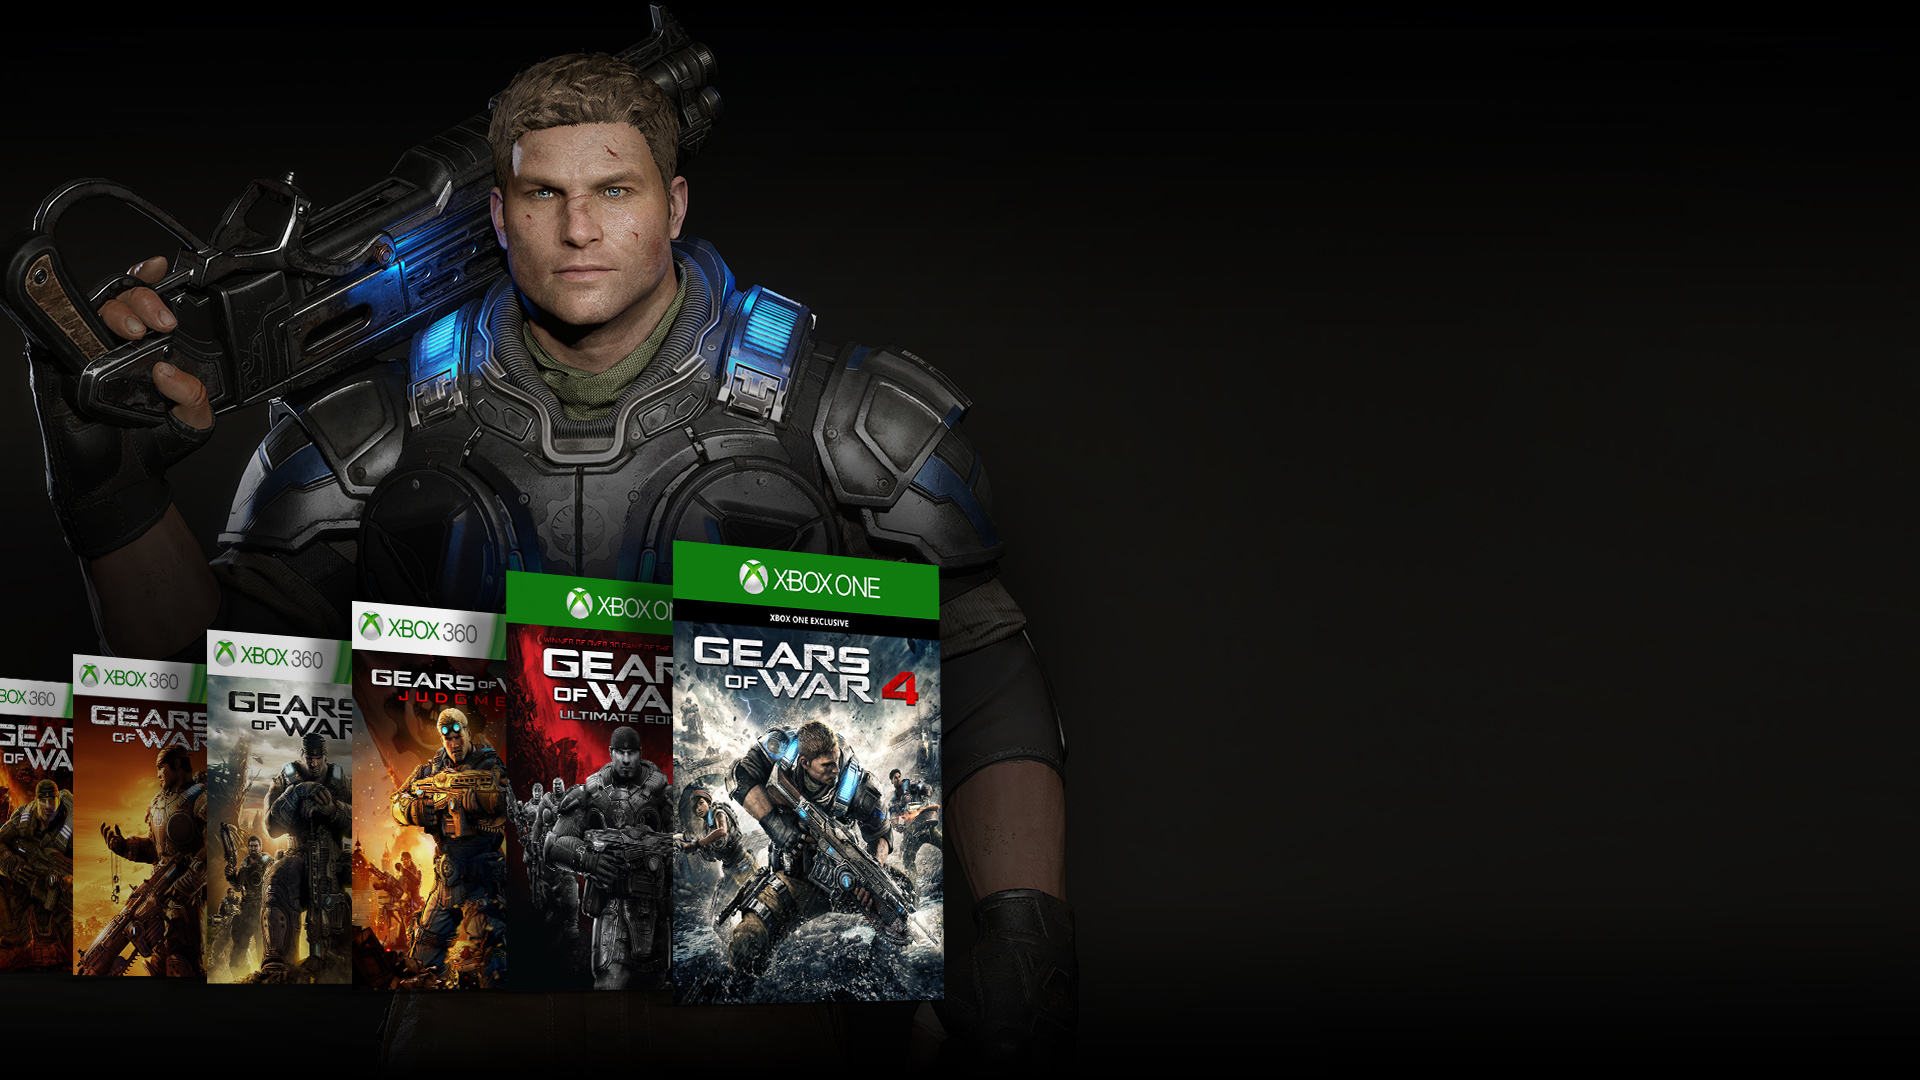 Selection of Gears of War game box shots in front of JD Fenix